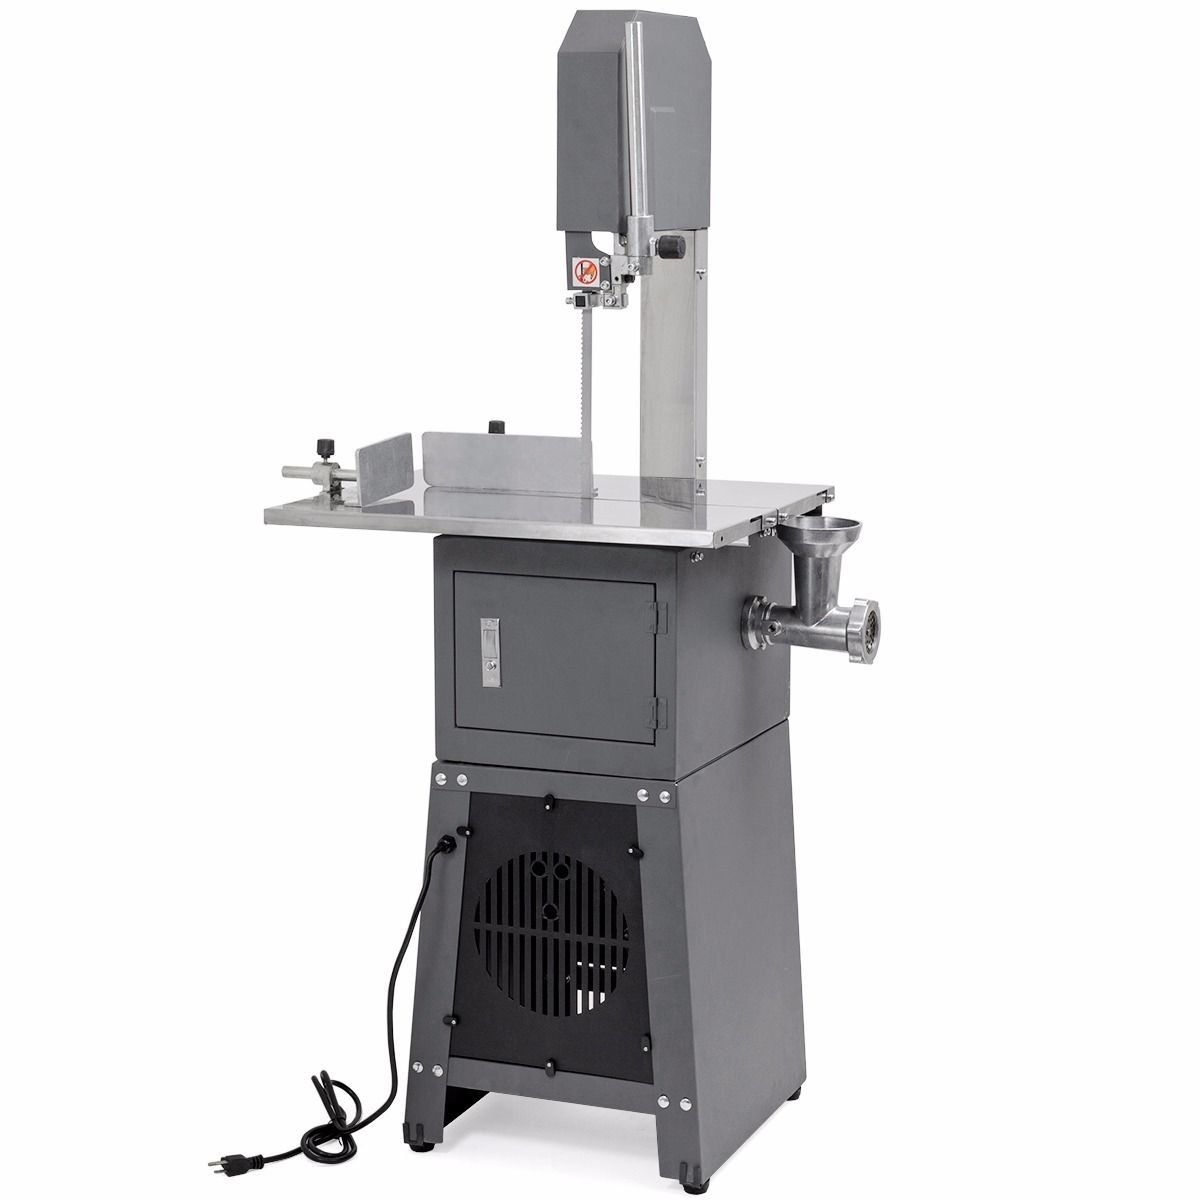 XtremepowerUS 2-in-1 Professional Butcher Meat Cutting Cutter Band Saw Mincer Grinder Sausage Stuffer Maker, 550W by XtremepowerUS